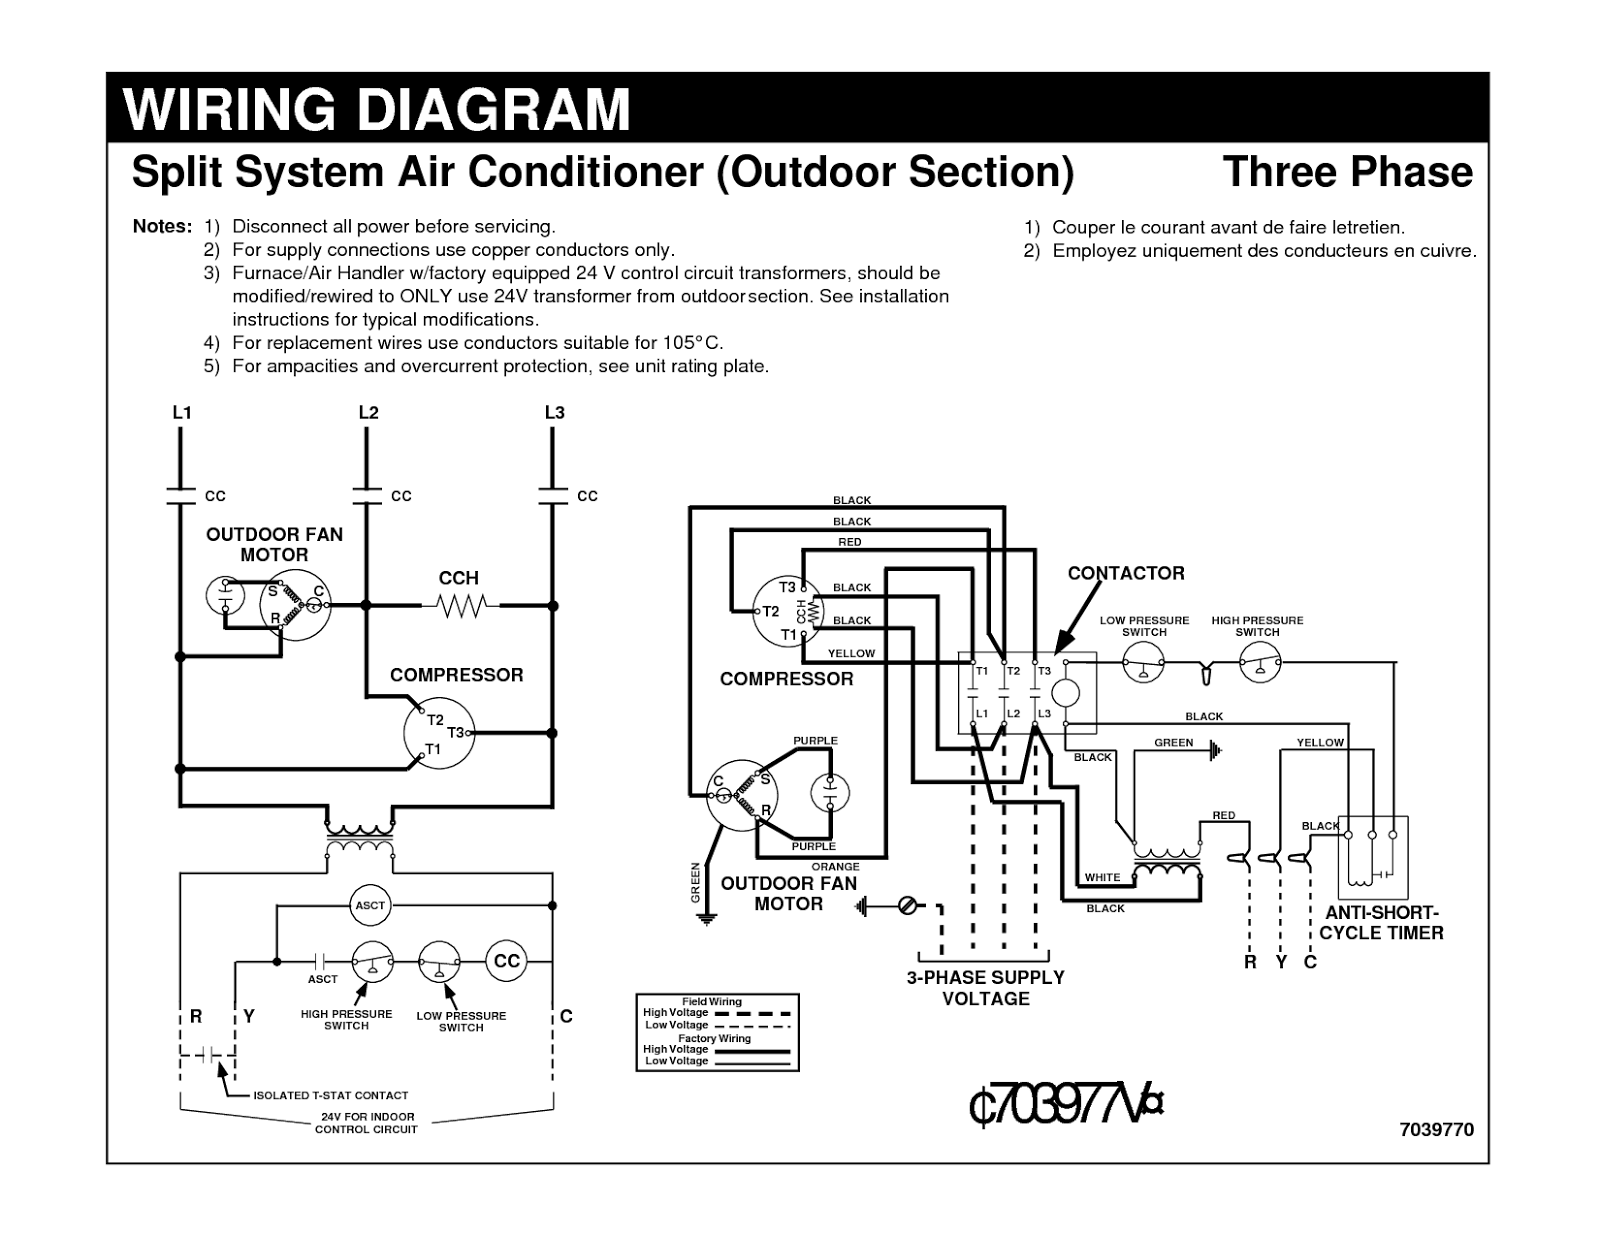 home ac unit wiring diagram tempstar ac unit wiring diagram